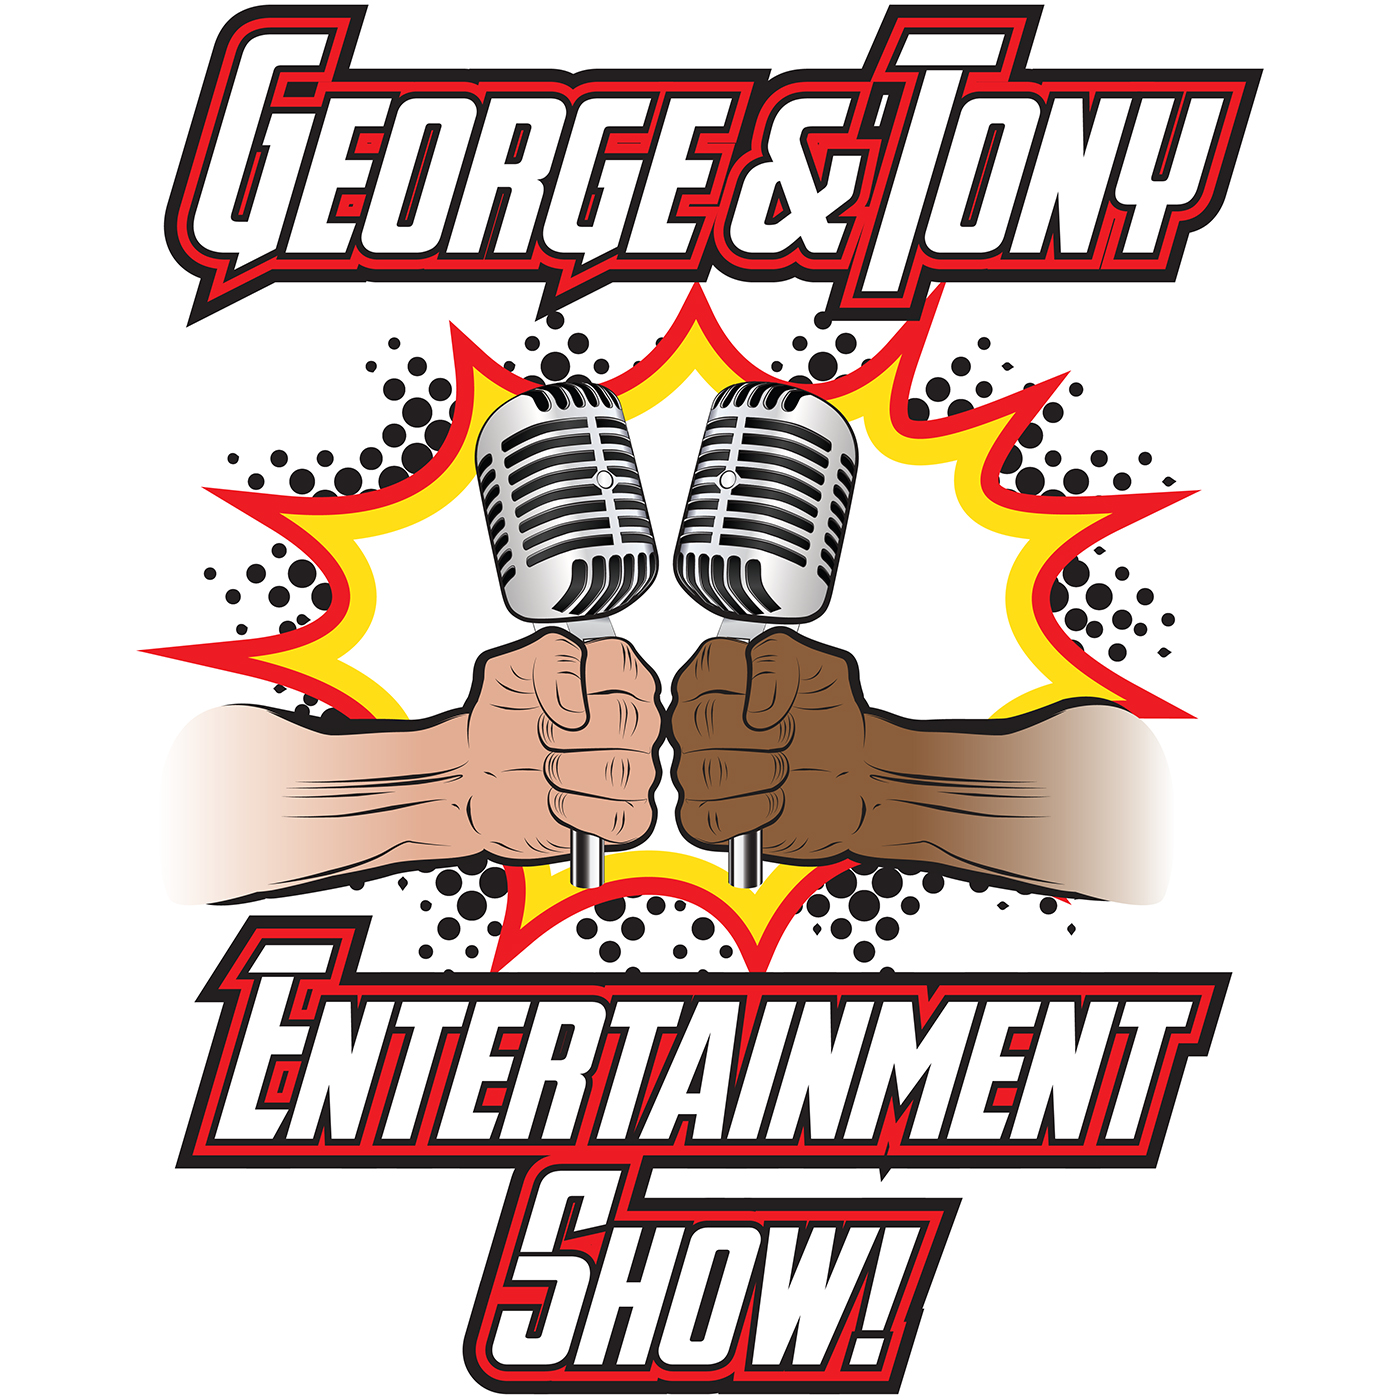 George and Tony Entertainment Show #55